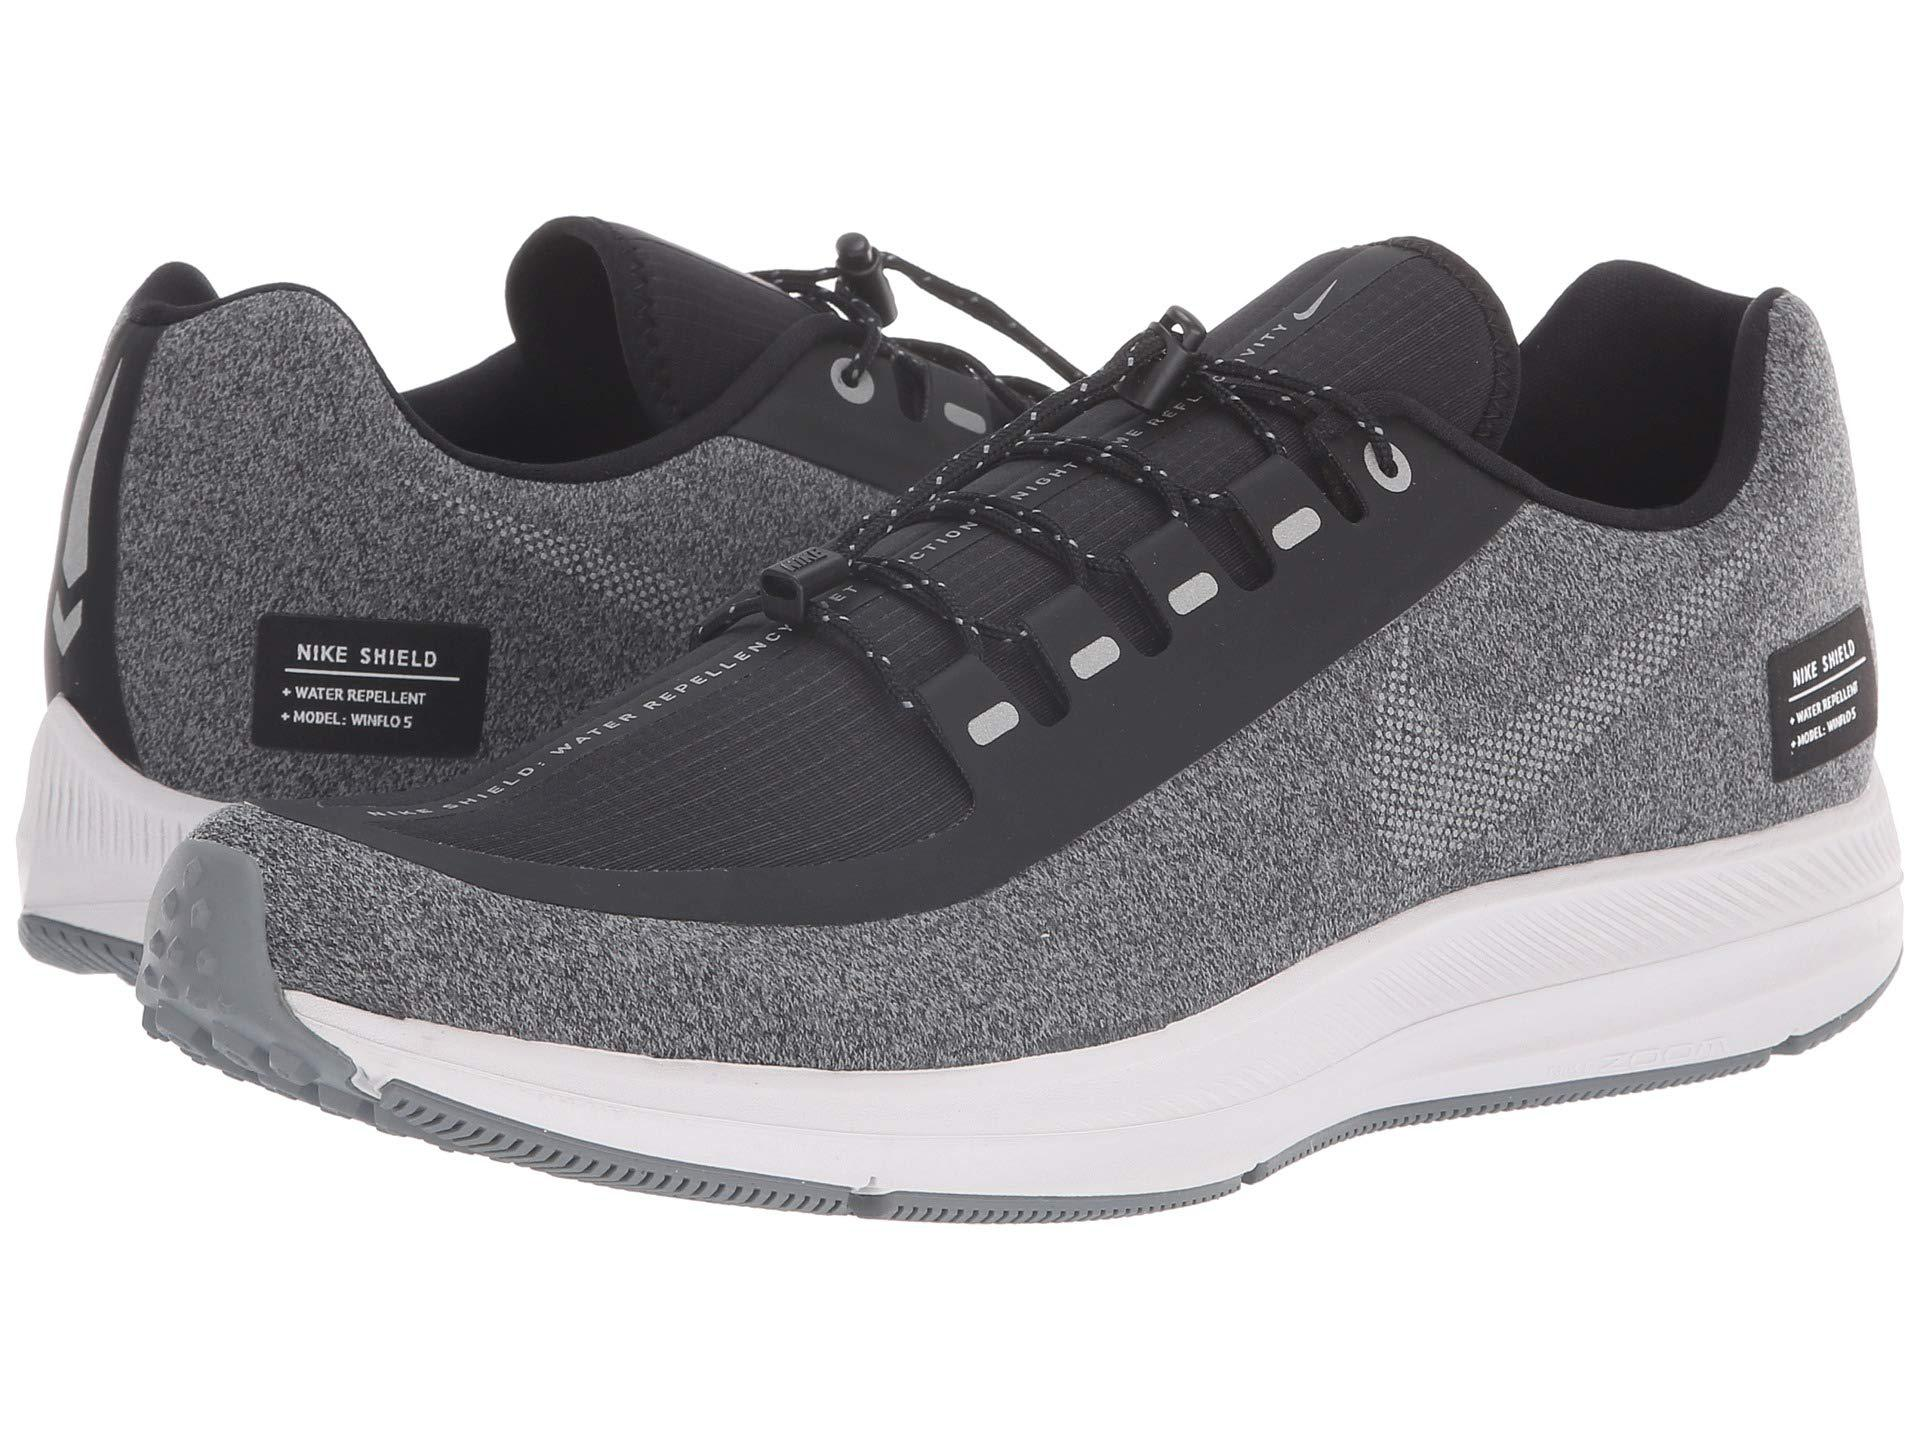 hot sale online e3ecf 8ecf1 Nike Air Zoom Winflo 5 Run Shield (black metallic Silver cool Grey ...